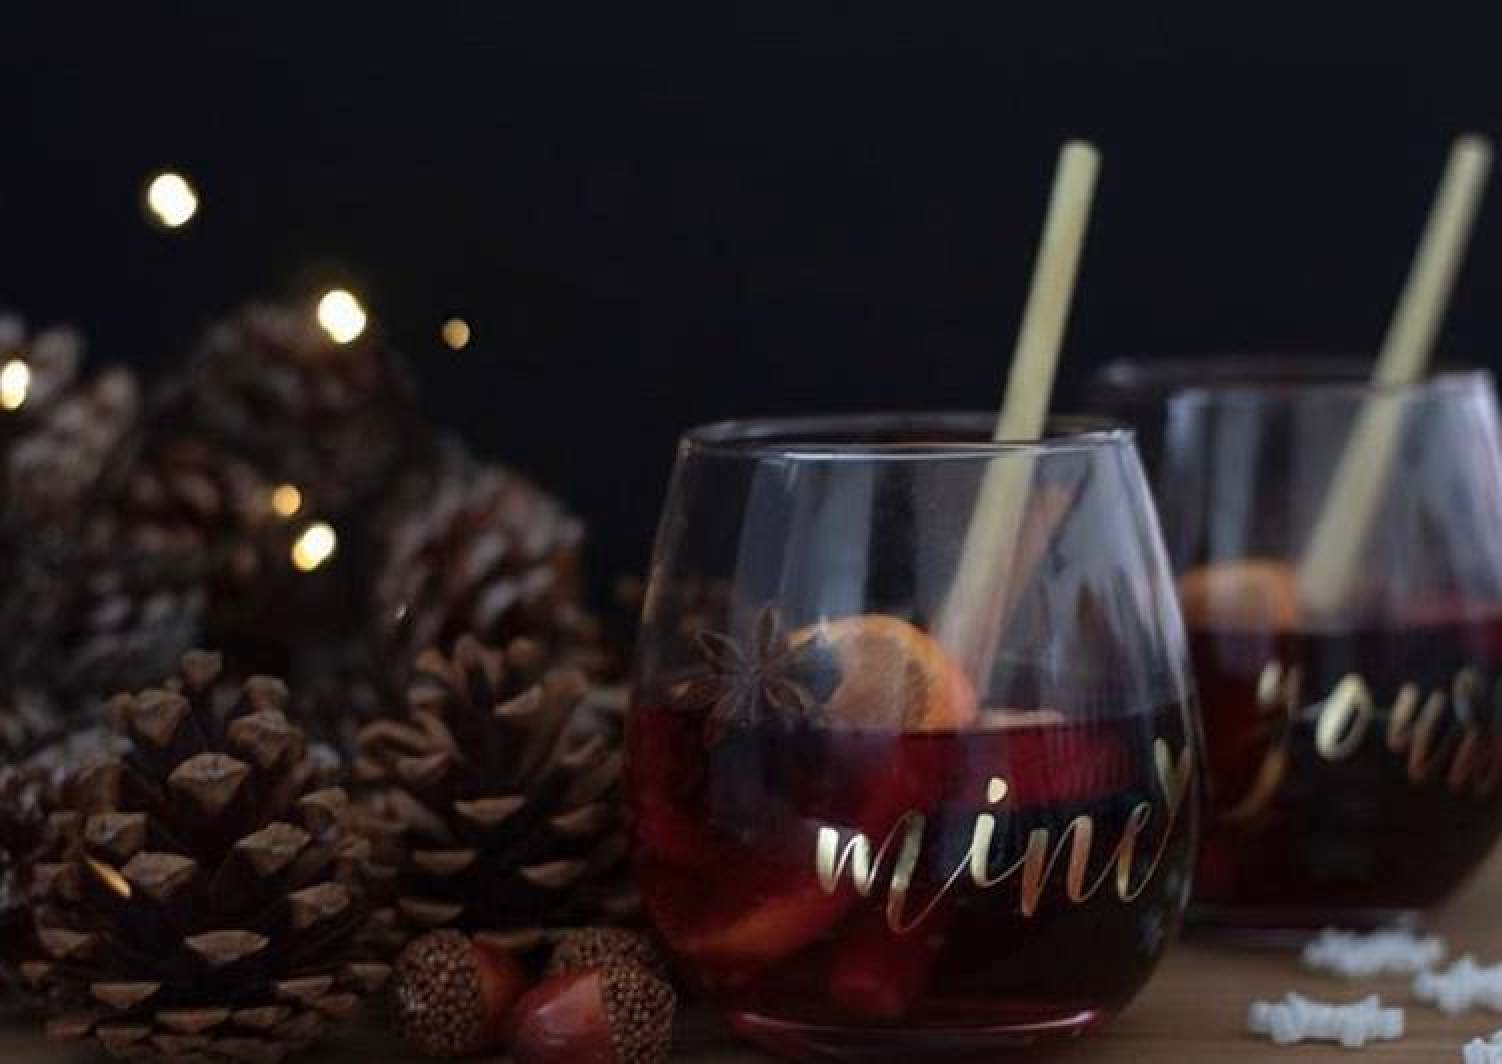 Mulled wine 'Mine and Yours'